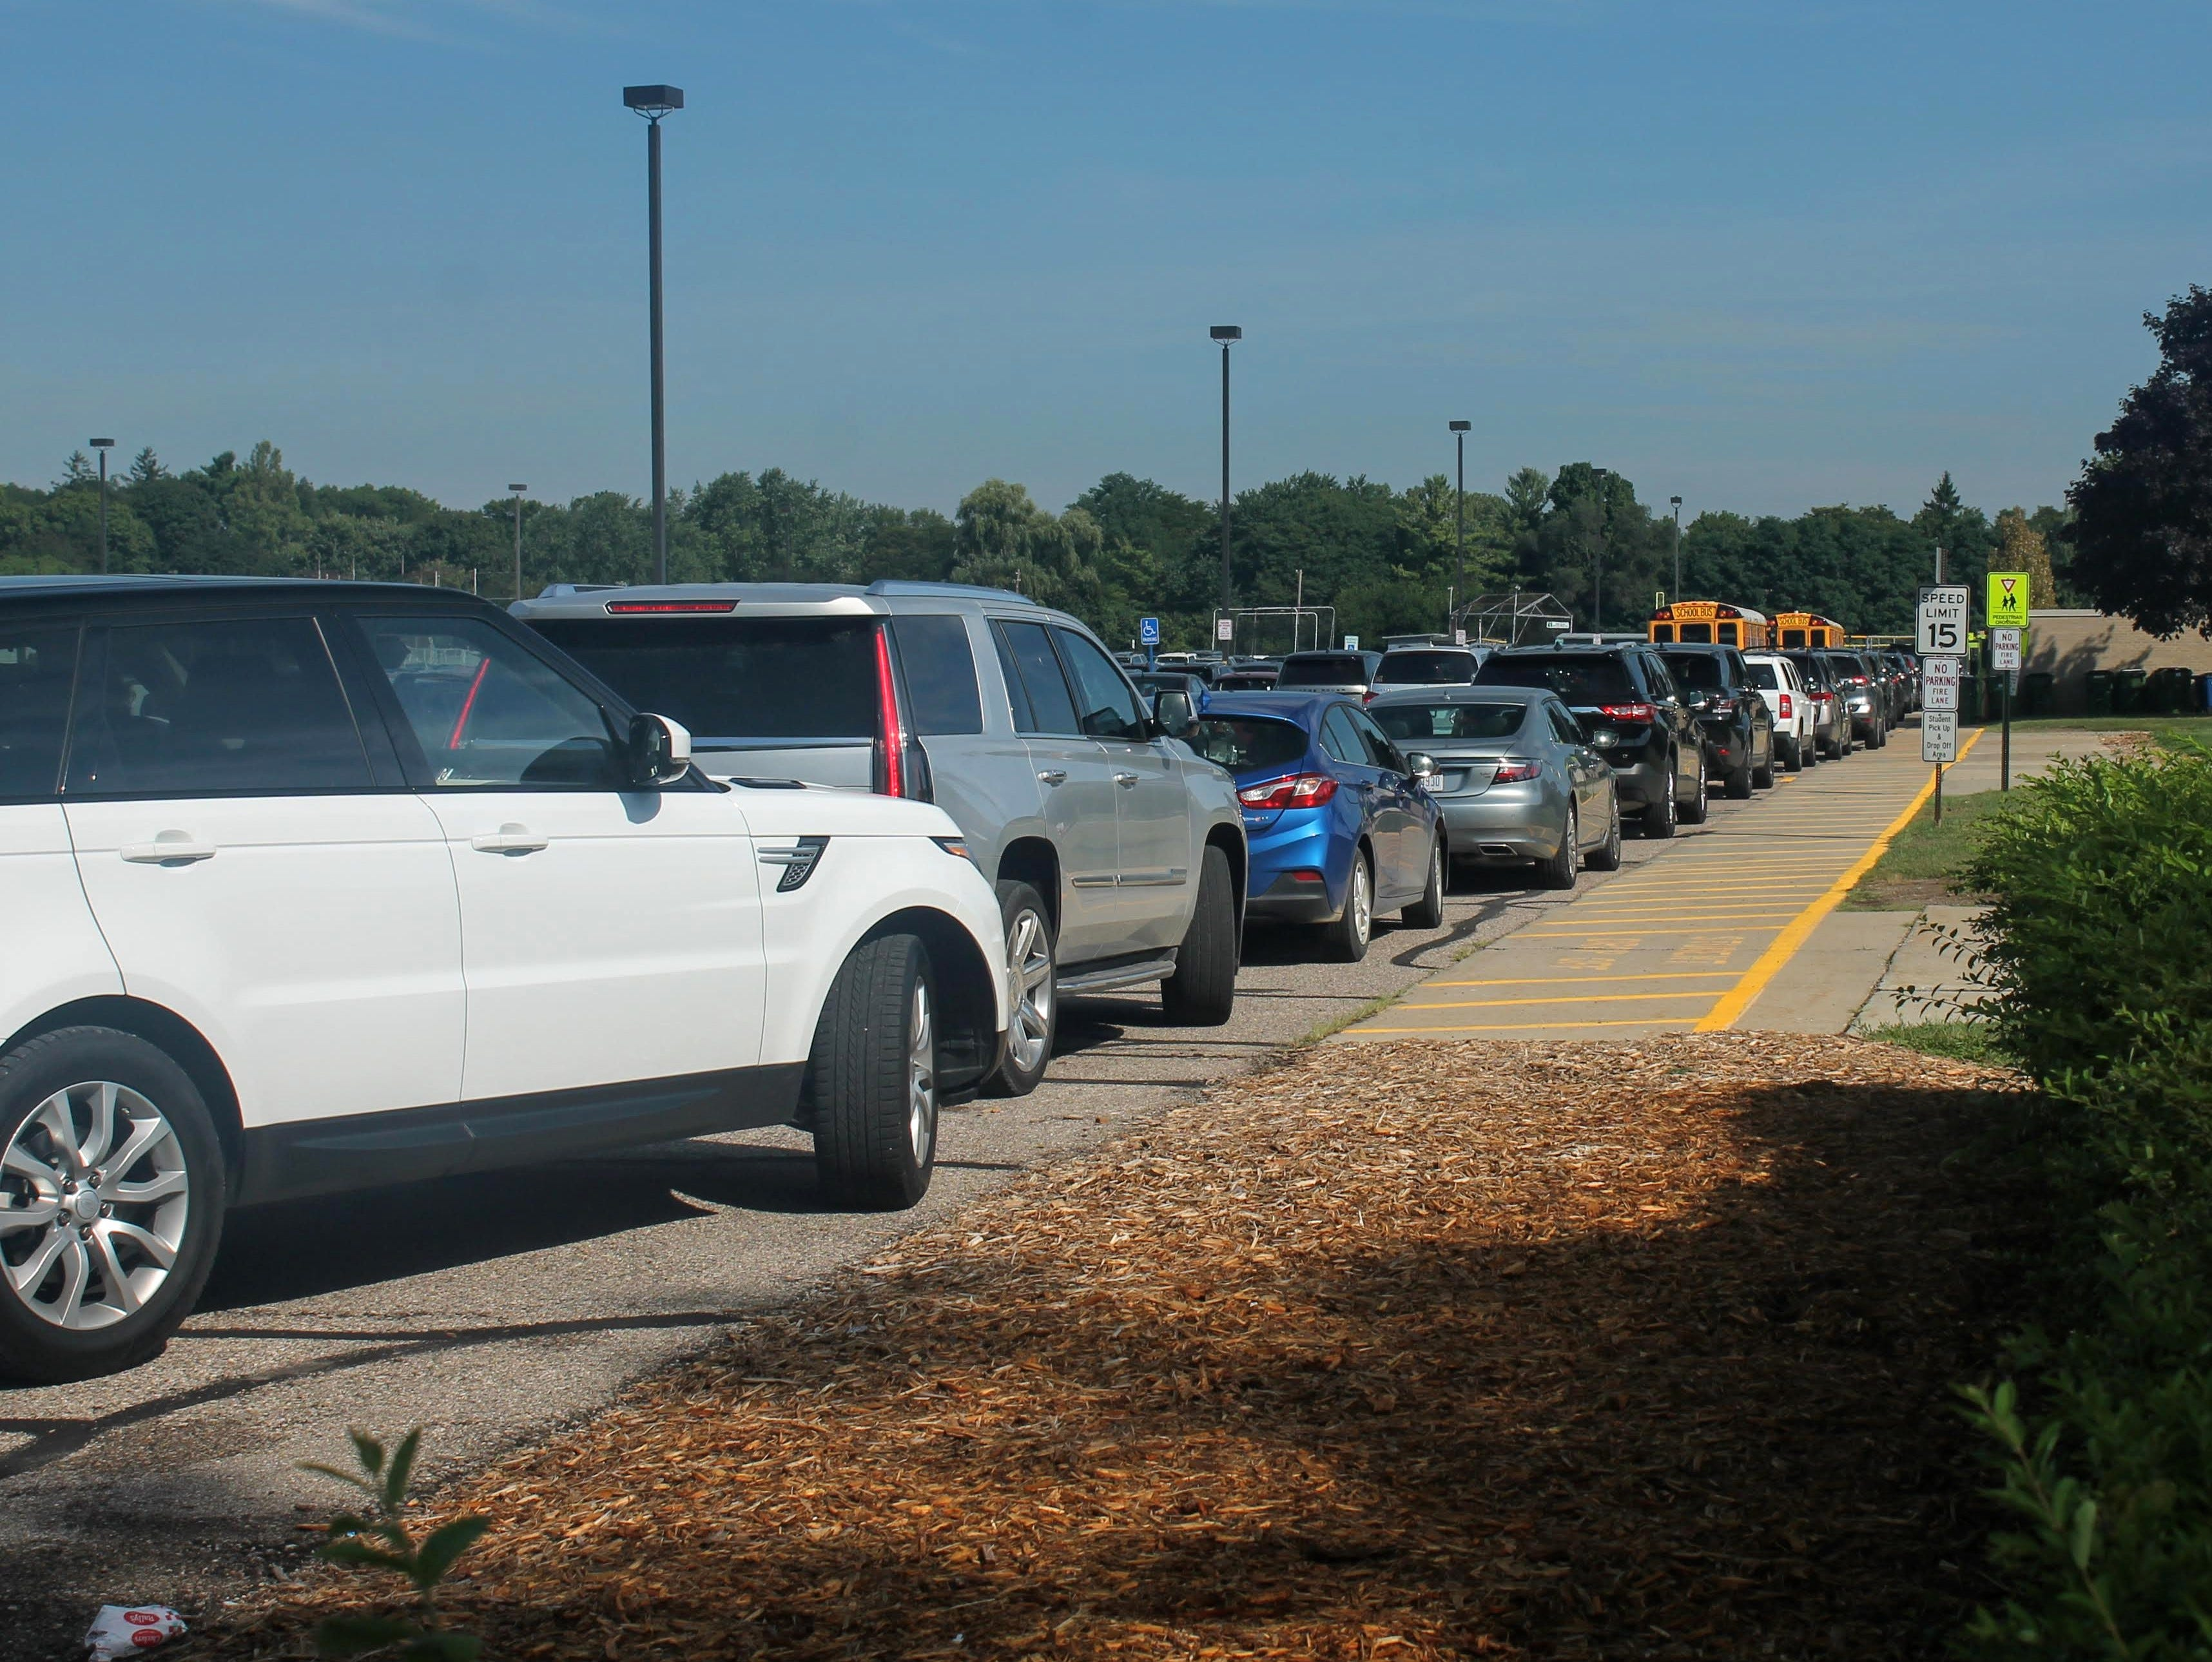 Vehicles line up to pick up students on the first day of school Sept. 4 at Groves High School in Beverly Hills.